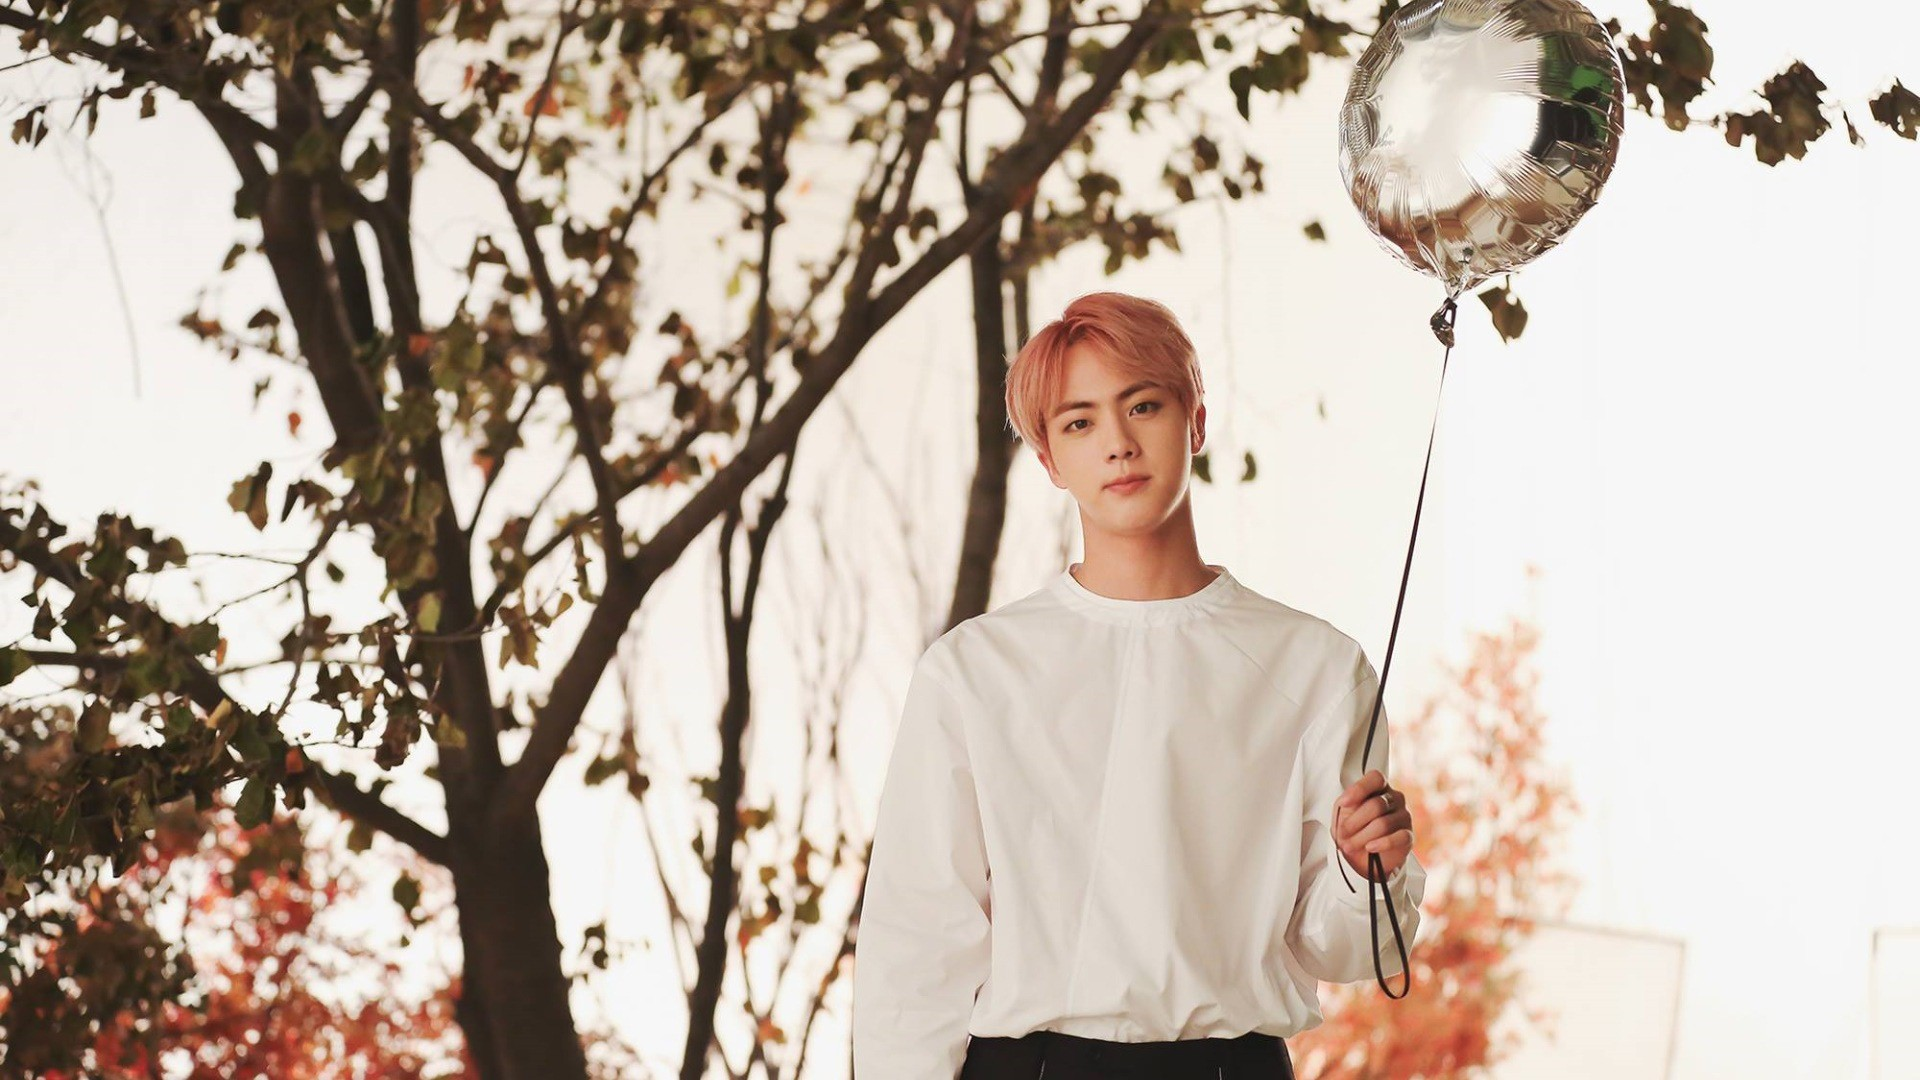 Jin From K Pop Superband Bts His Past His Private Thoughts And